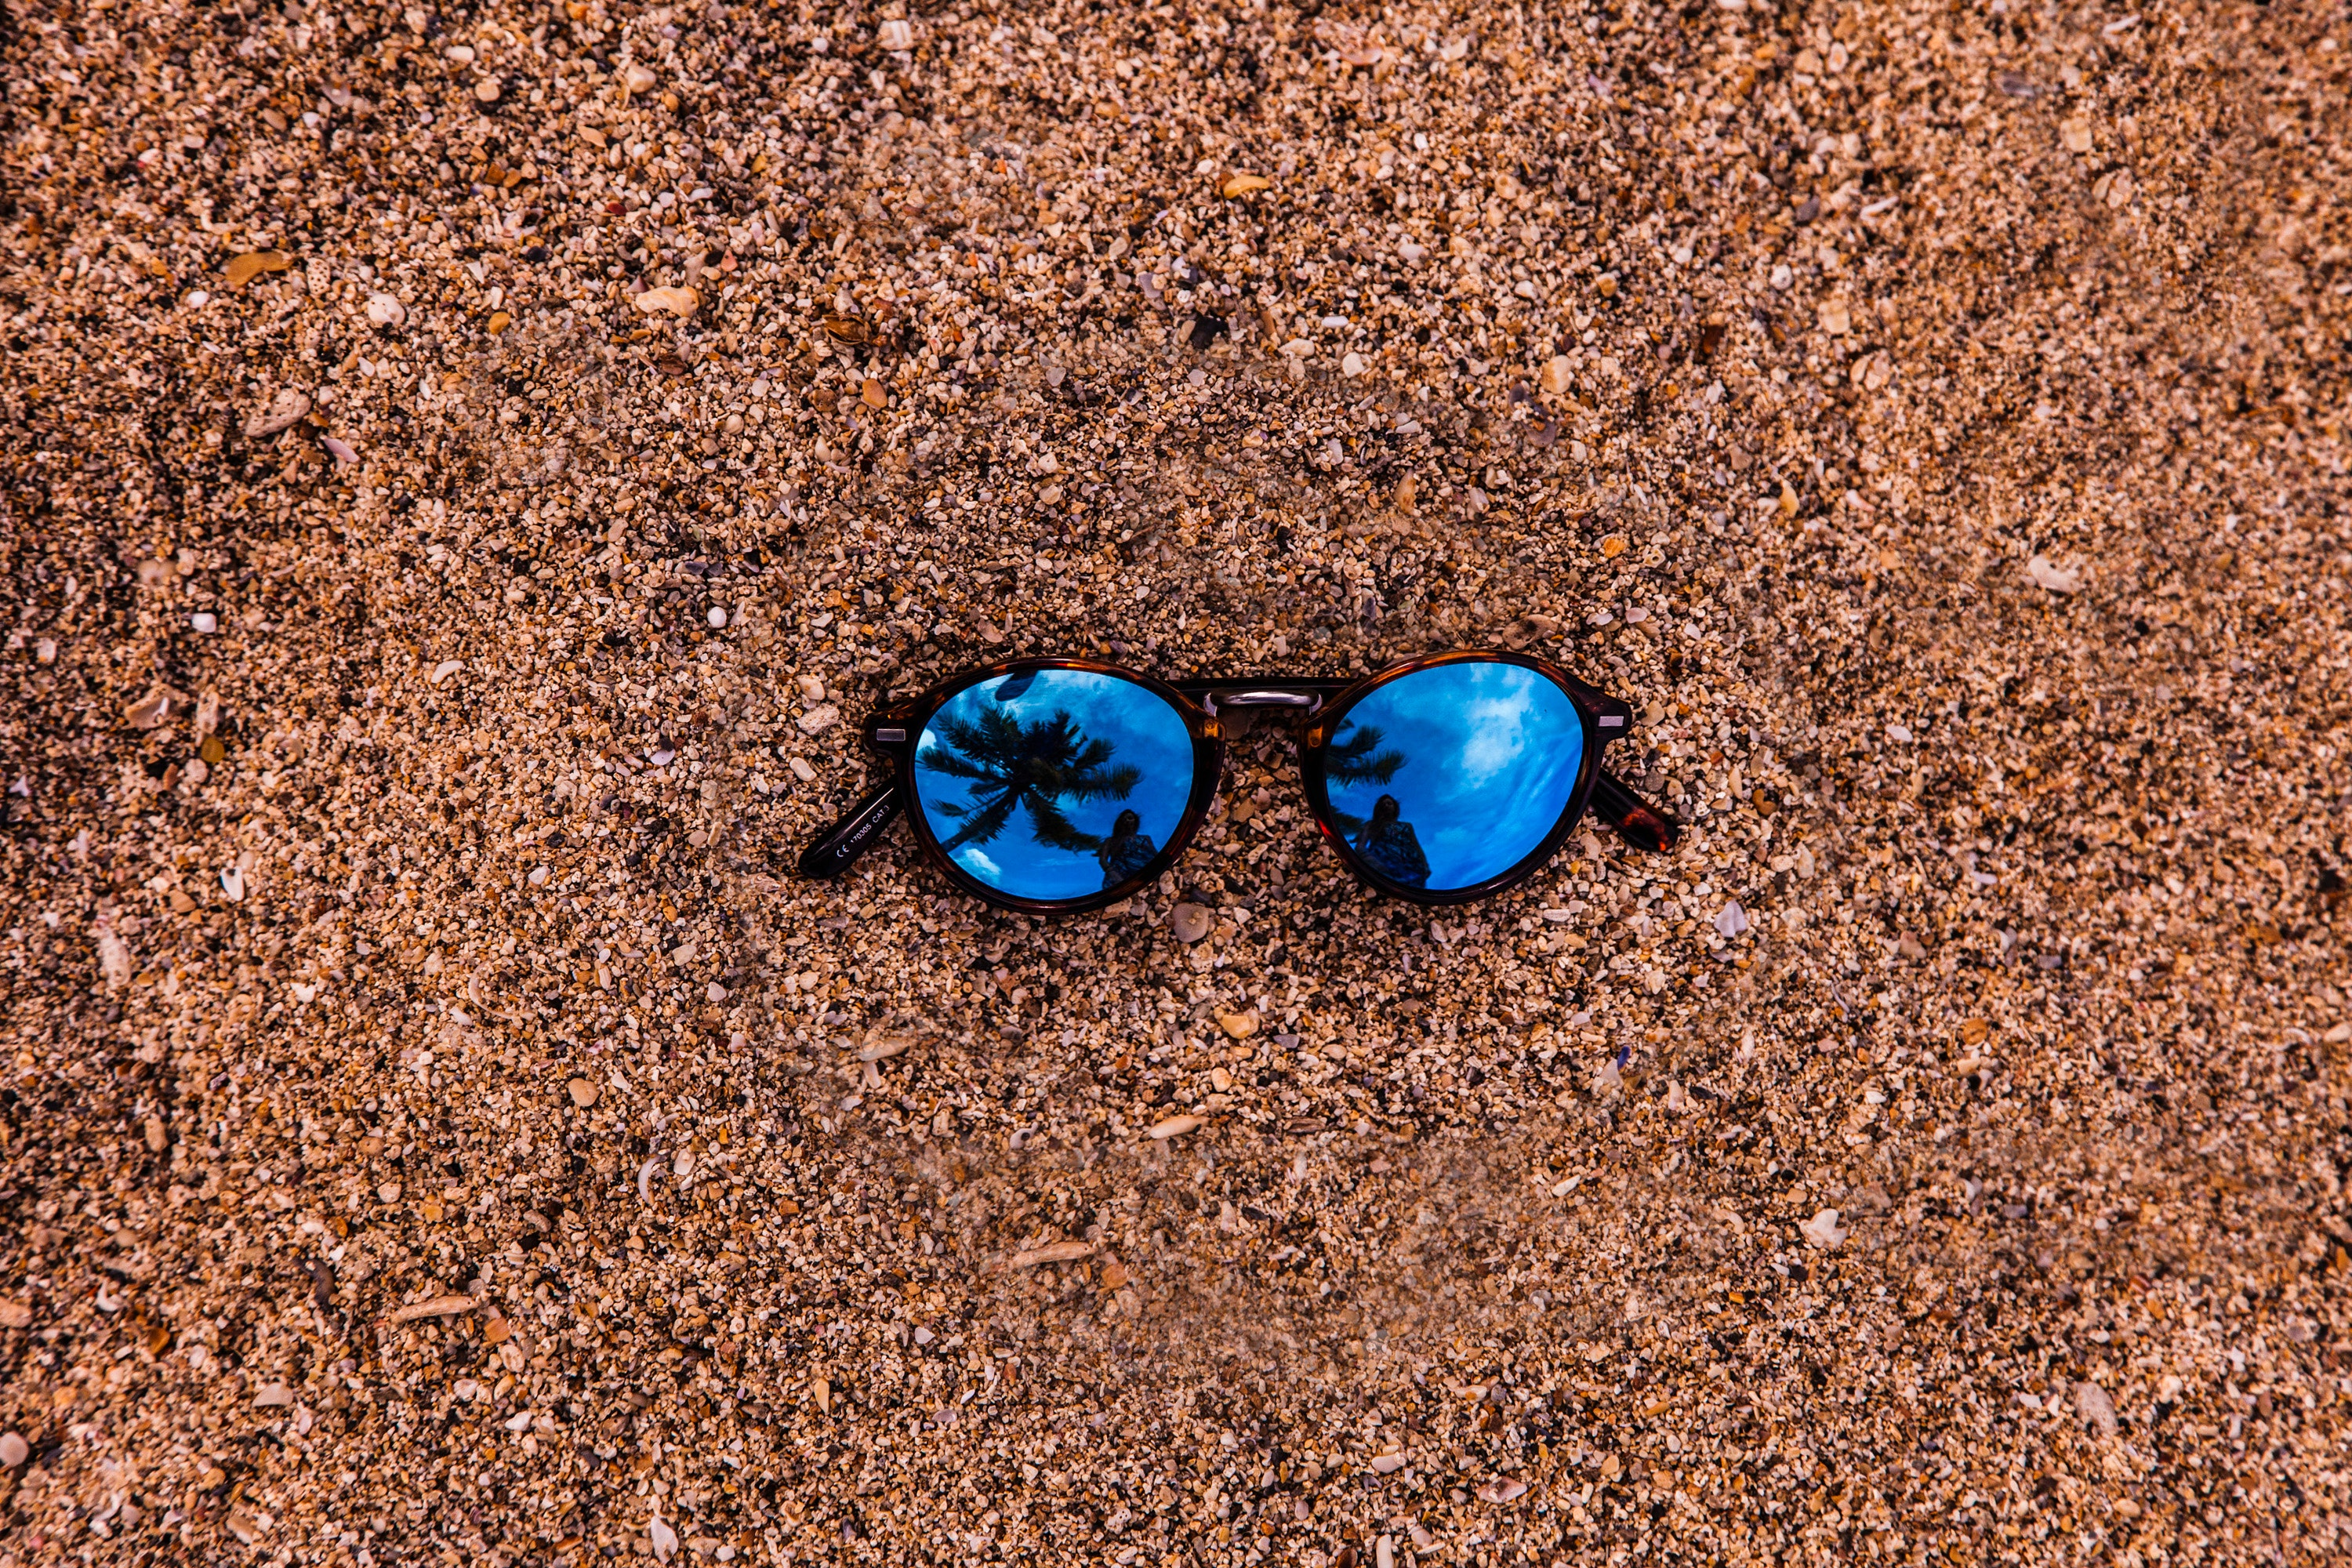 Photo of sunglasses in the ground